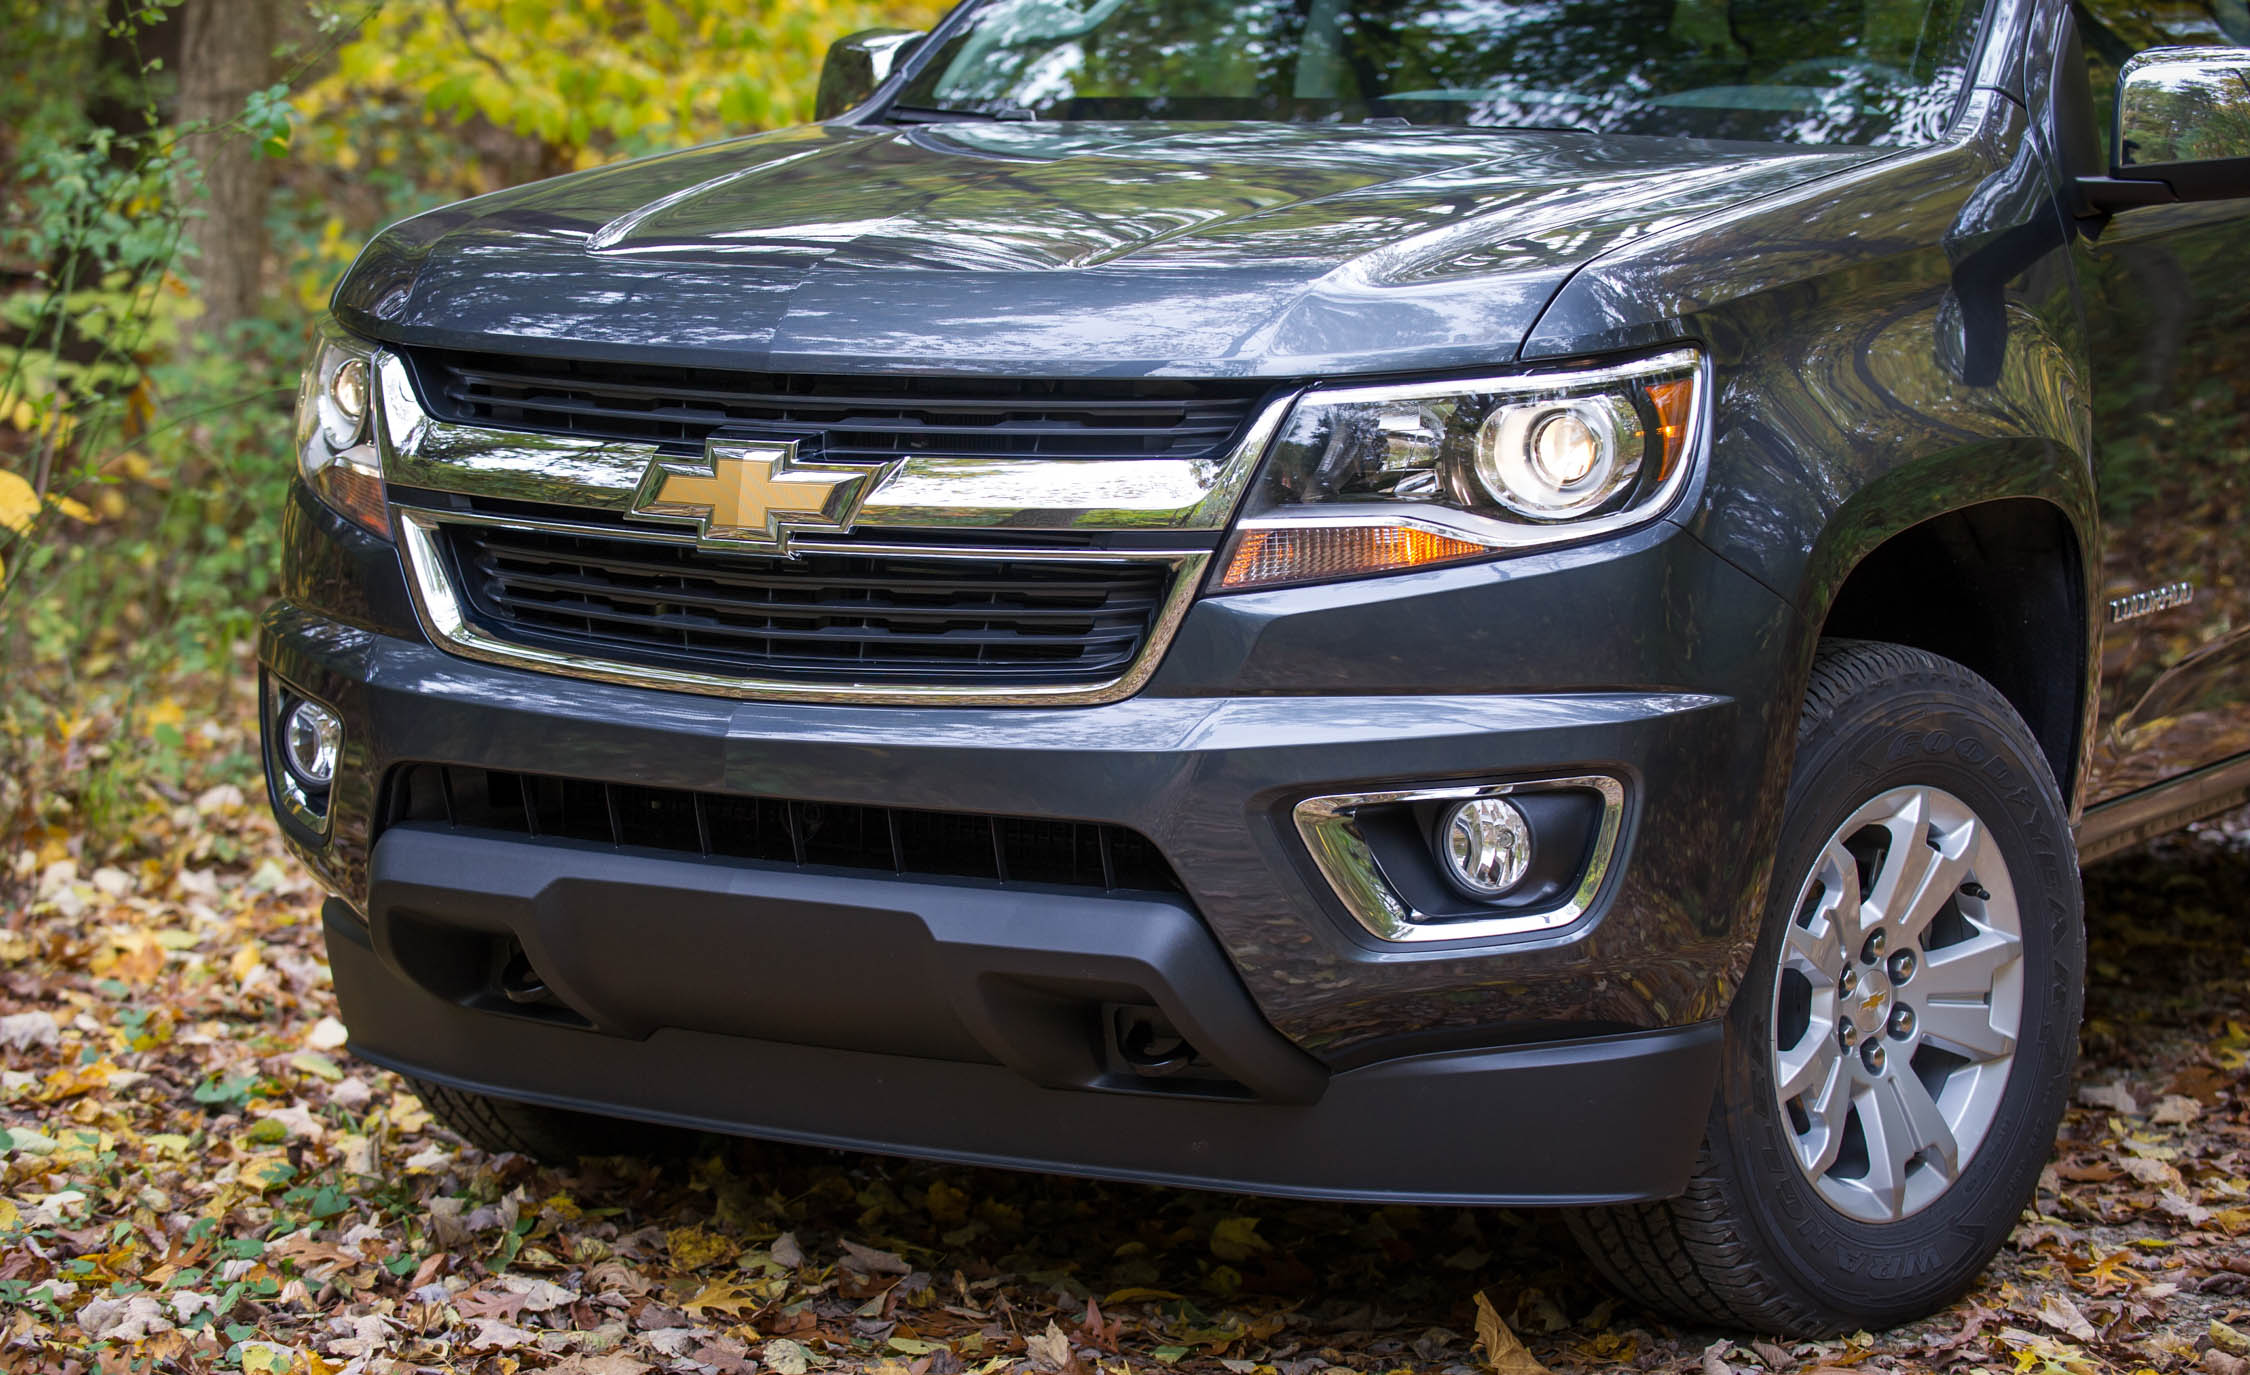 2017 Chevrolet Colorado LT Exterior View Grille And Bumper (View 21 of 41)